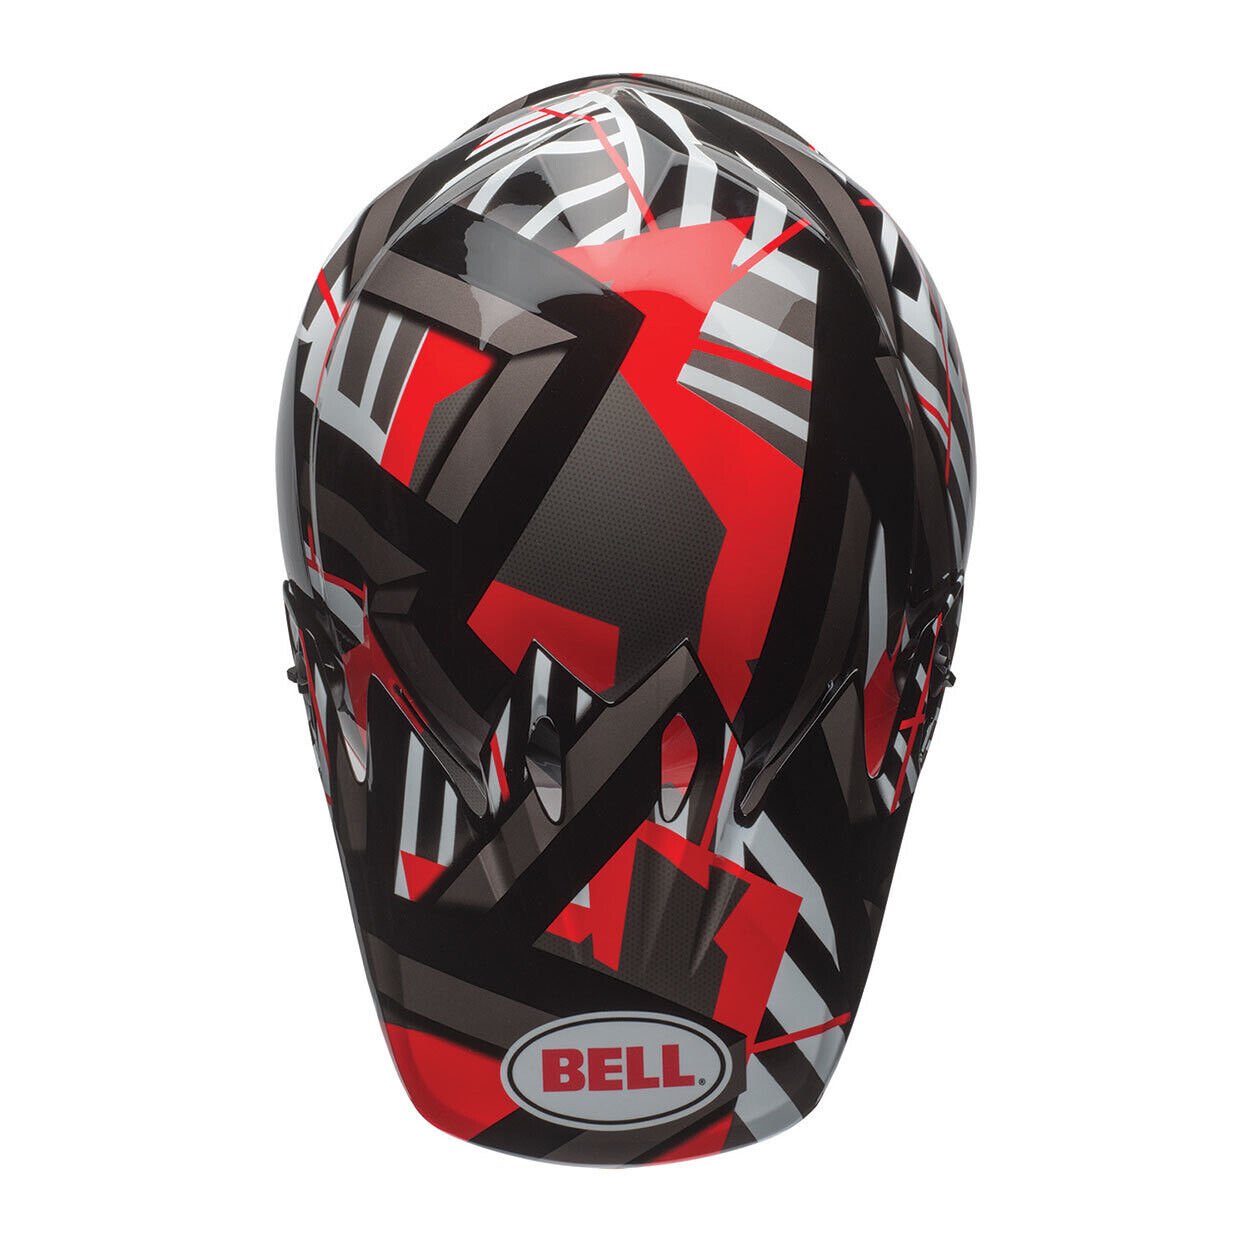 Bell Mx-9 Mips Mips Mips Motocross Mx Fahrradhelm - Tagger Double Trouble Schwarz Rot 5aaa62